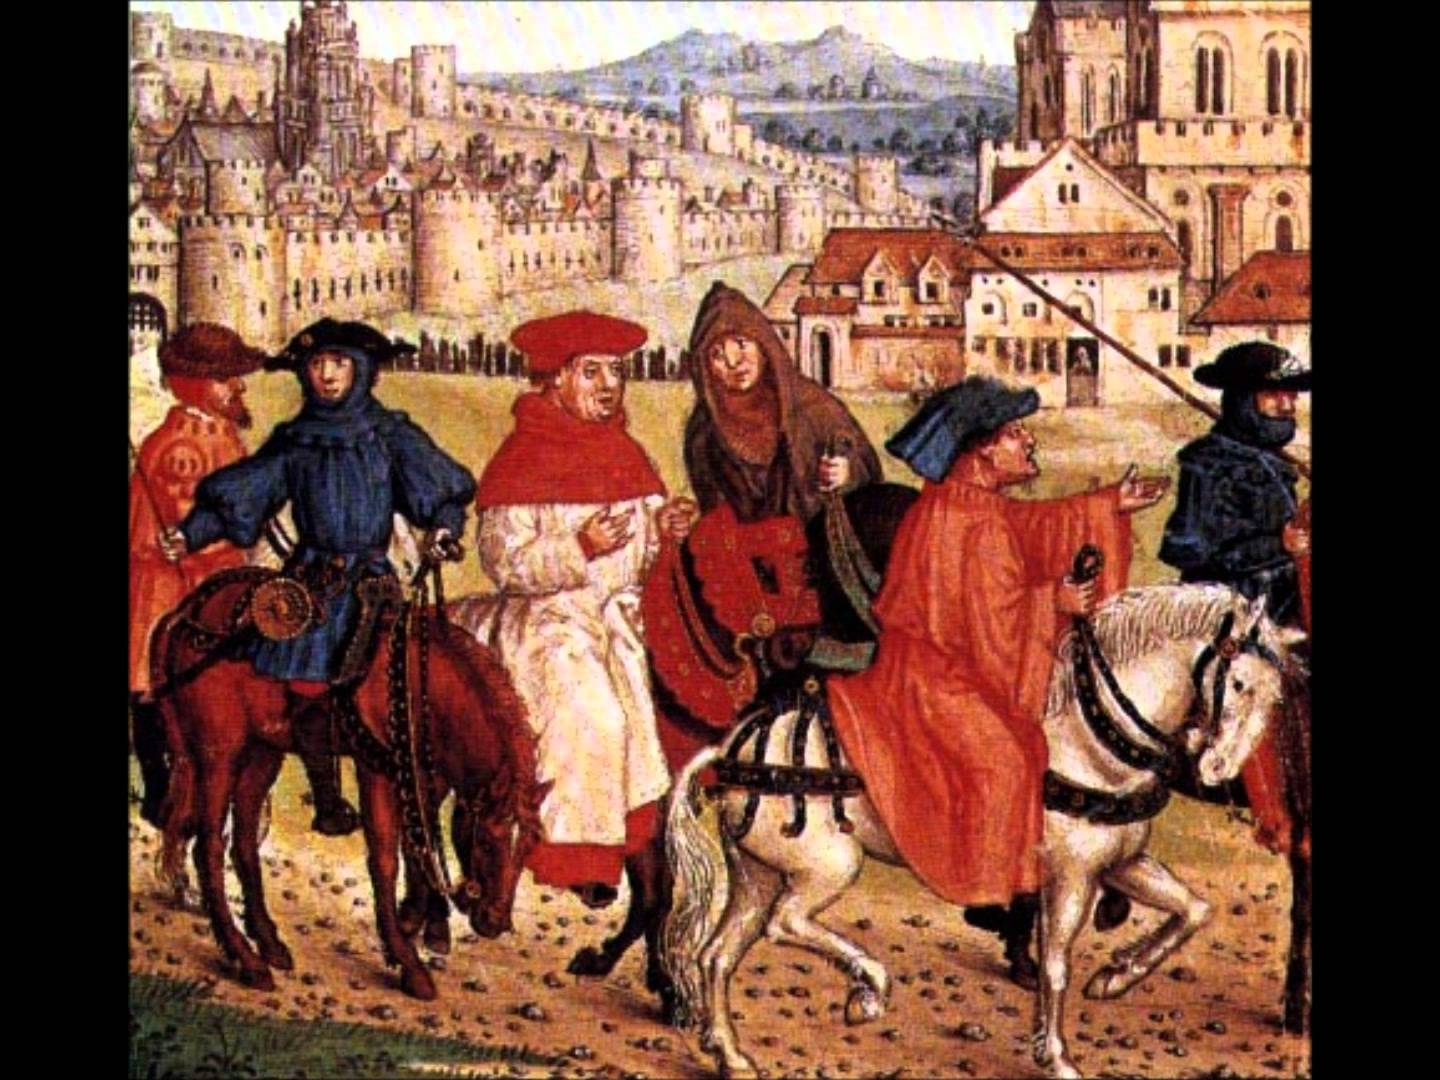 an analysis of geoffrey chaucers prologue to the canterbury tales Character analysis of the prioress in the canterbury tales by geoffrey chaucer  character analysis, geoffrey chaucer, the canterbury tales not sure what i'd do.